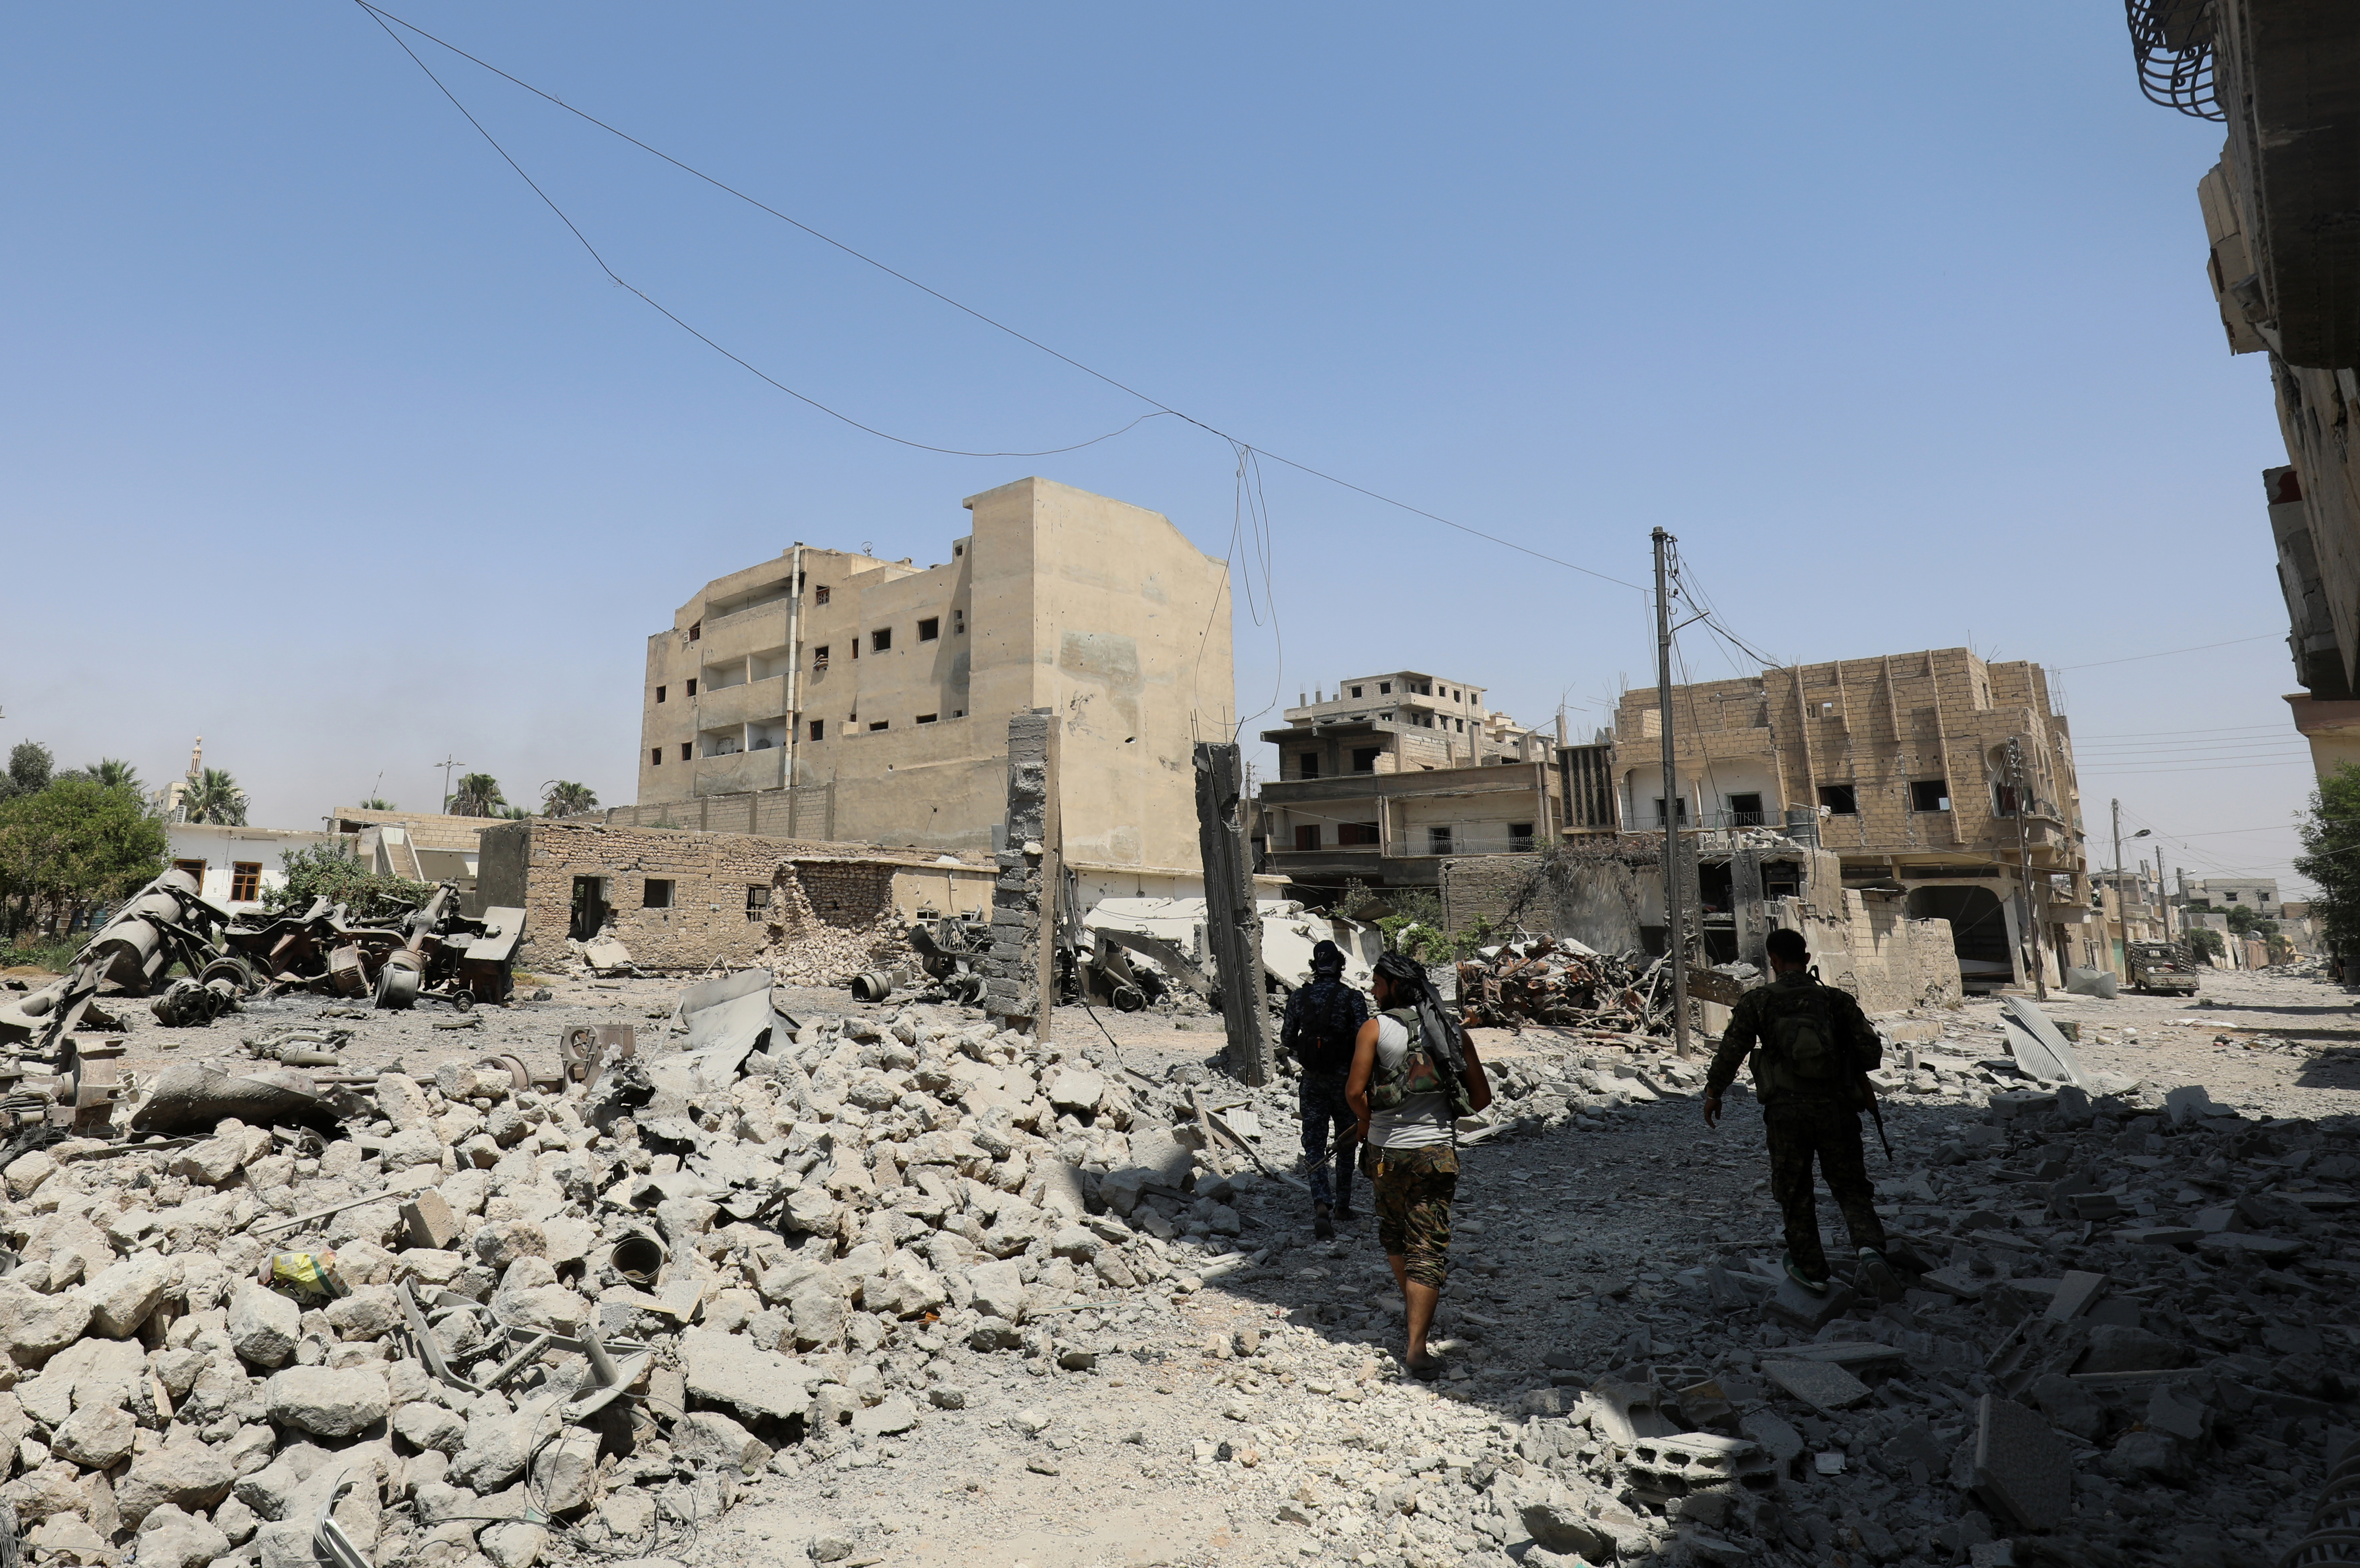 FILE - Fighters from the Syrian Democratic Forces (SDF), a US-backed Kurdish-Arab alliance, walk through the rubble in an eastern area of the embattled city of Raqa in northern Syria on Aug. 15, 2017.